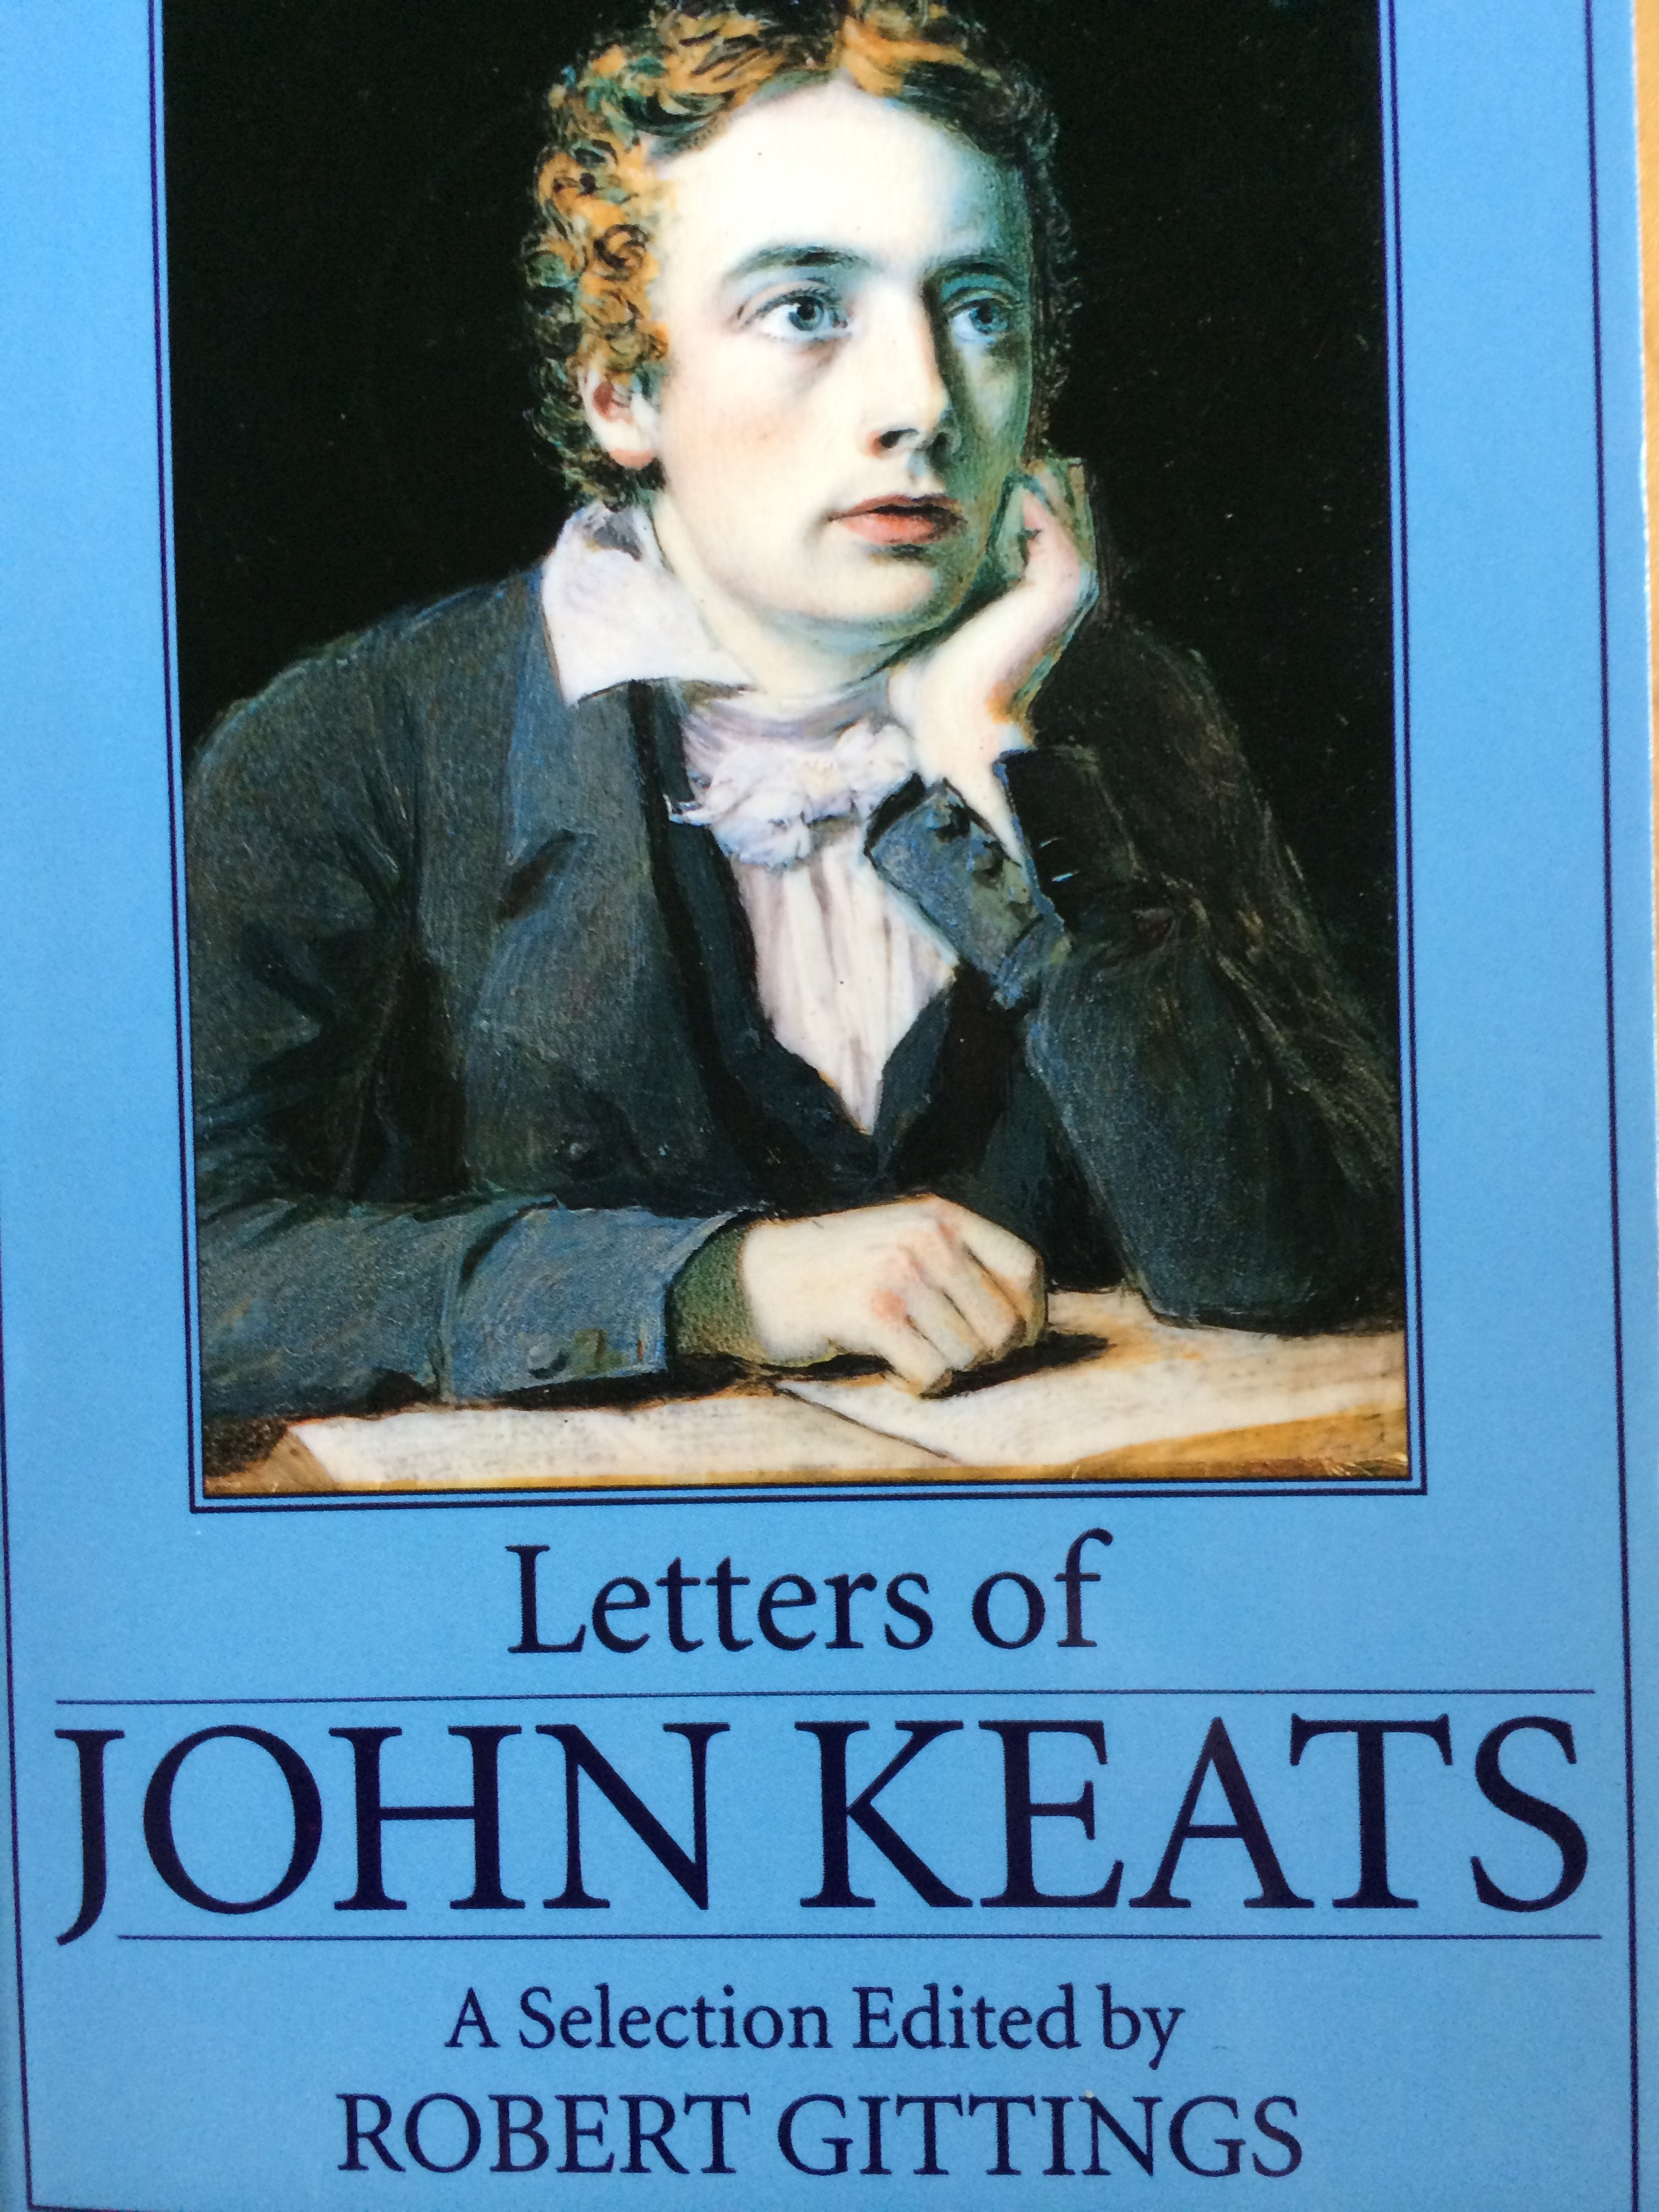 My copy of Keats' Letters.